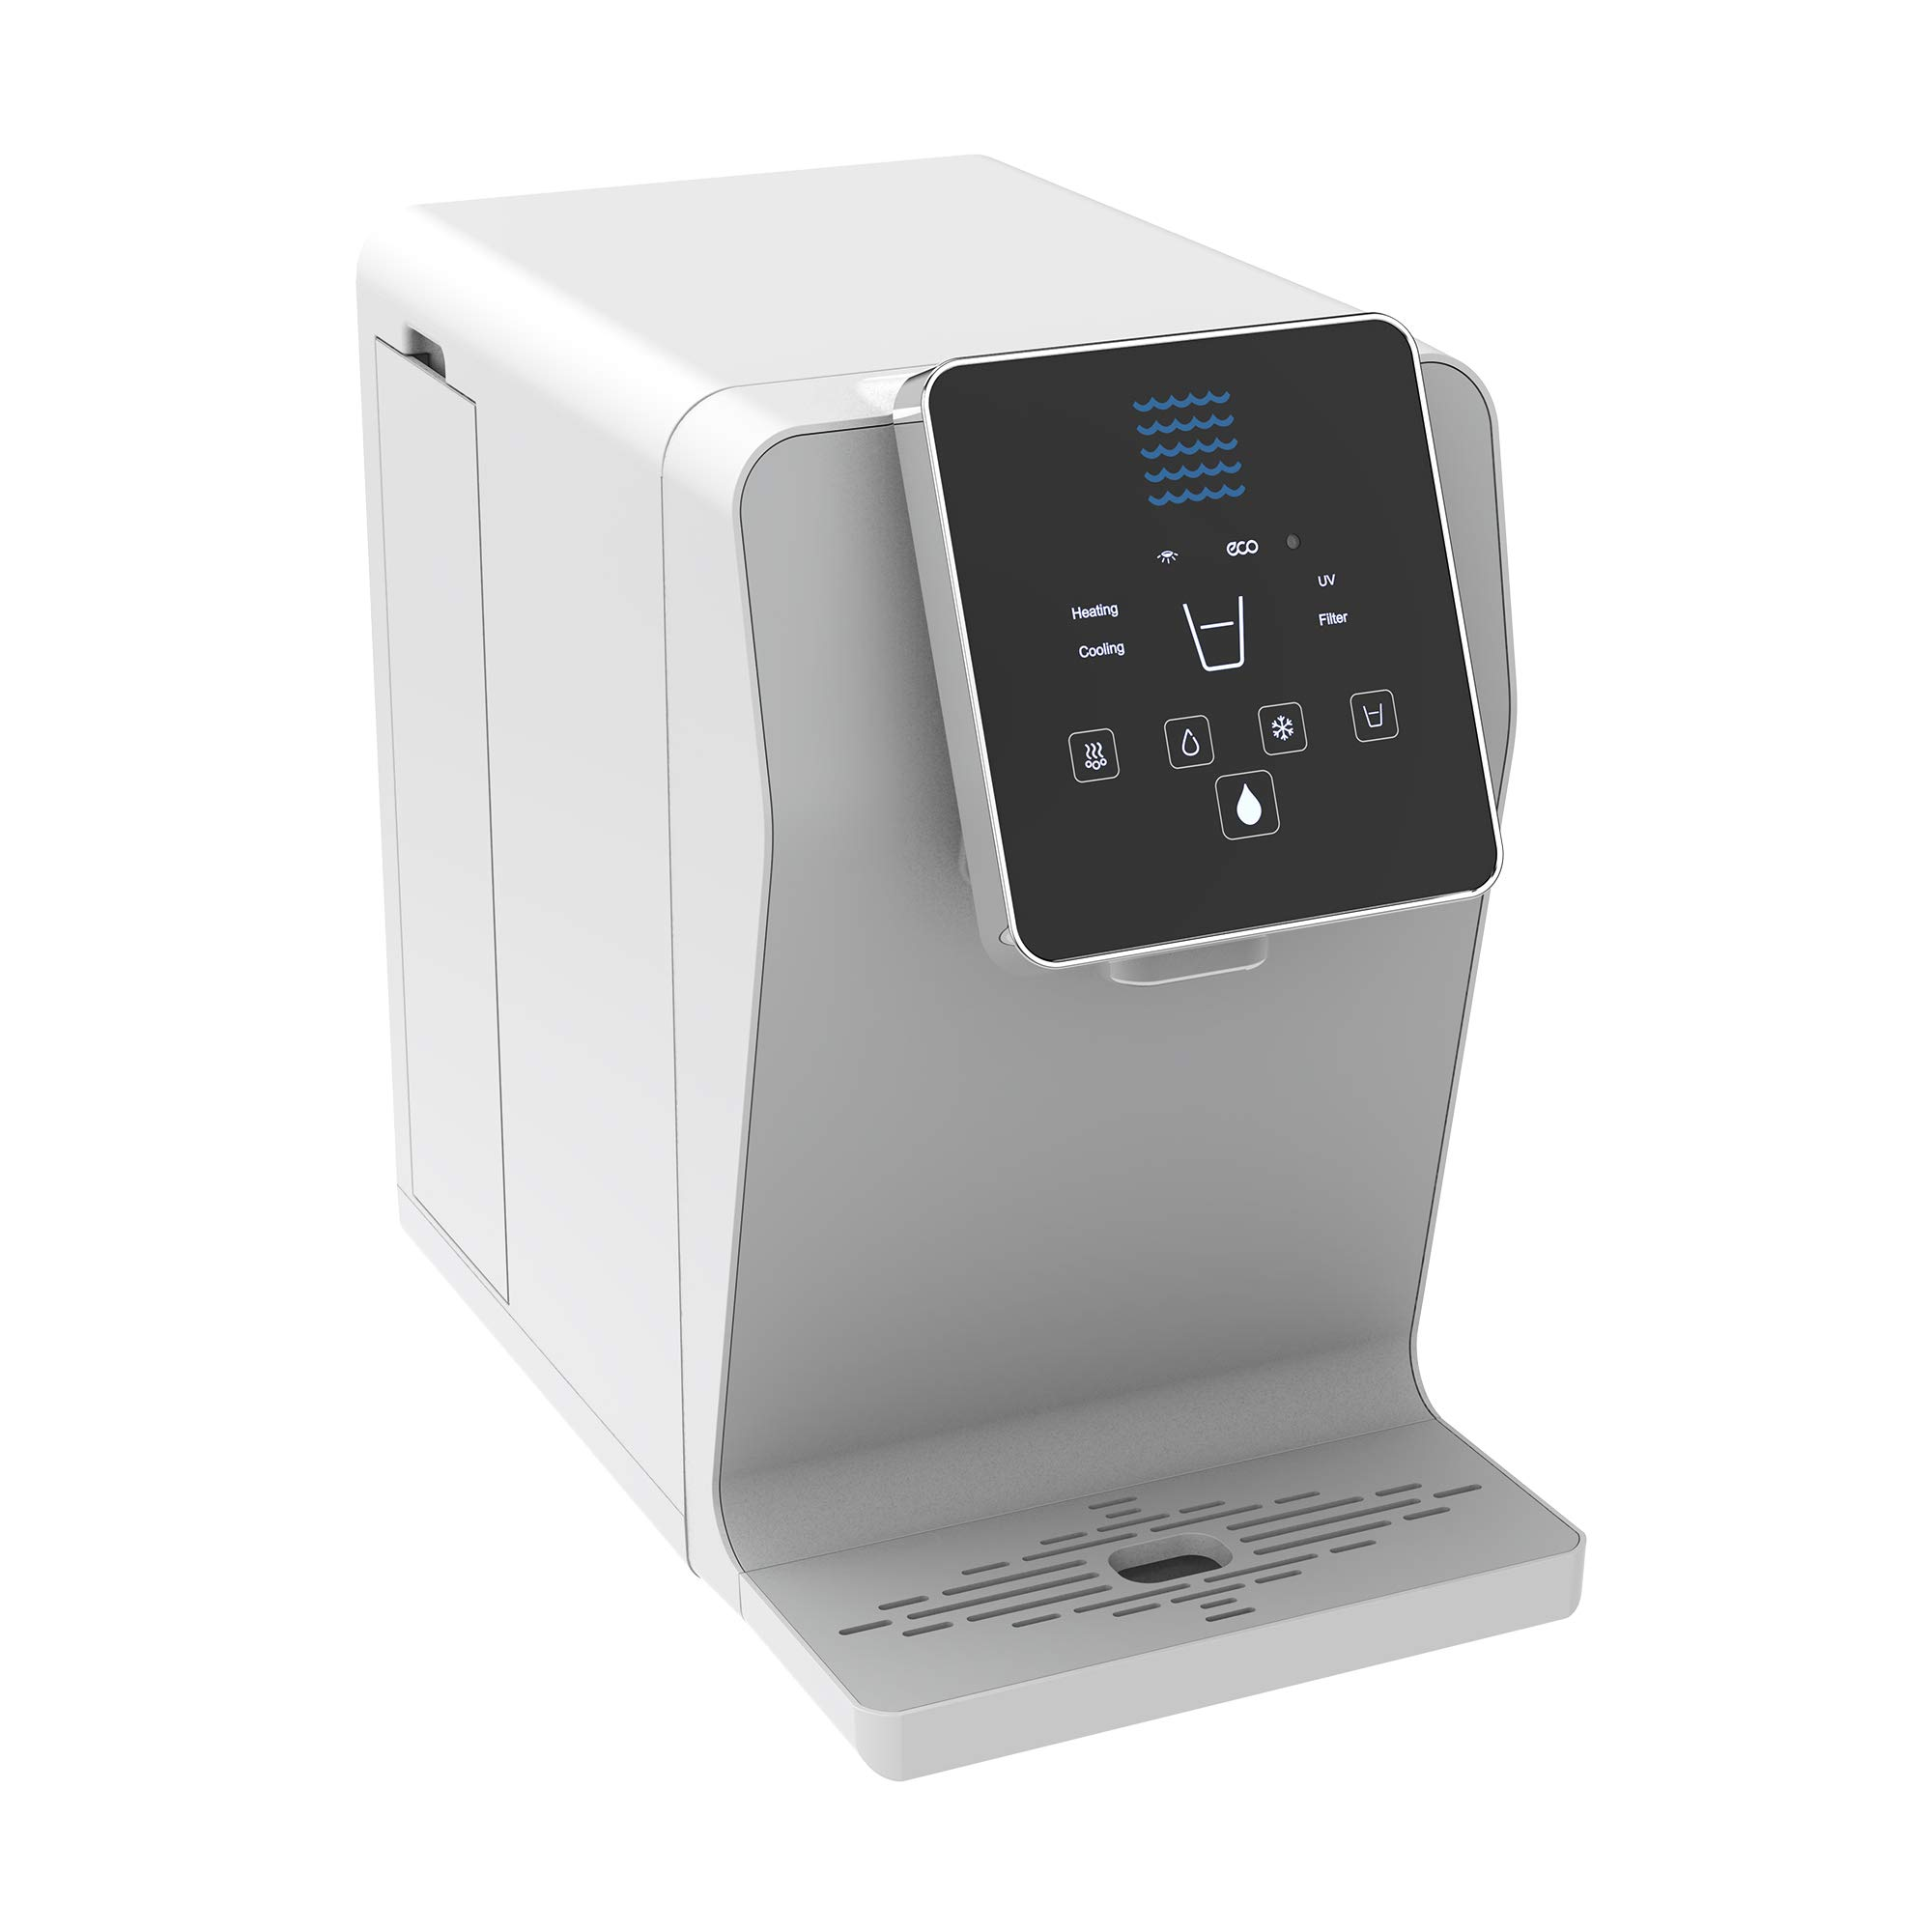 Bottleless Countertop Water Dispenser Gen2. Triple Temp Settings - Ambient Hot and Cold Water Dispenser, Touch Control Dispense, UltraVi Technology +Multi-Stage Bottleless Water Cooler Filtration System- UL / Energy Star Approved.